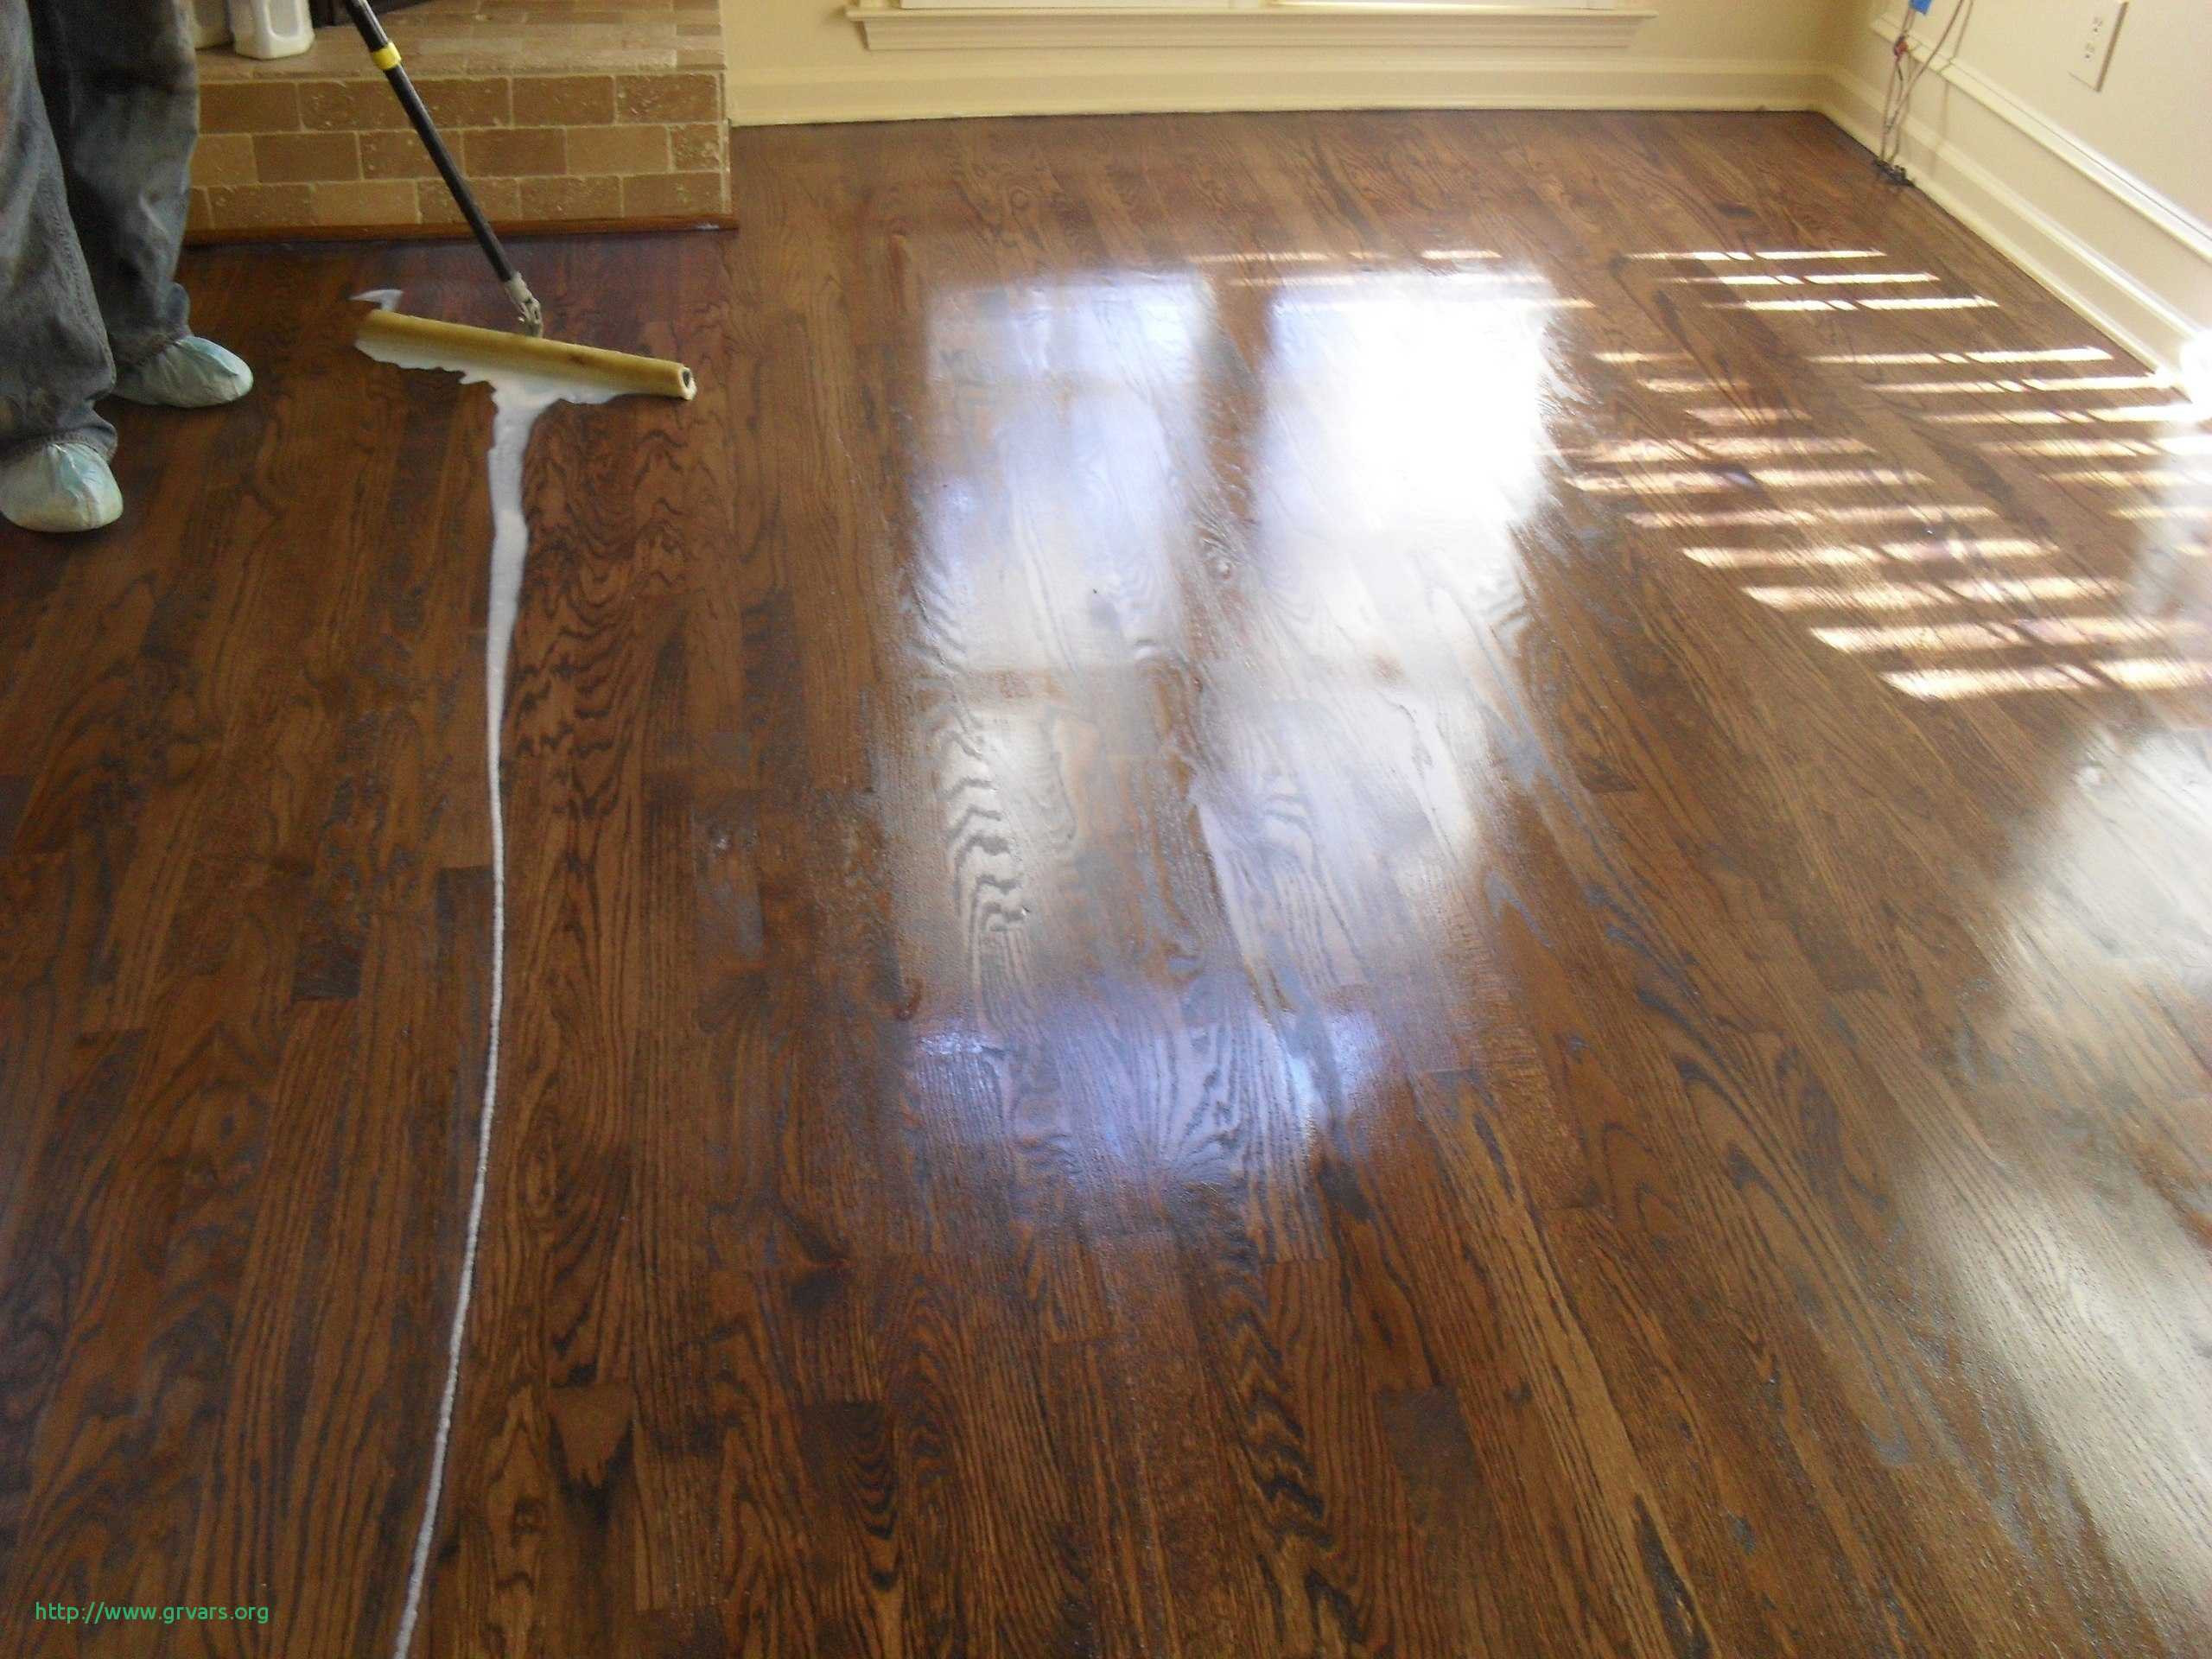 how to refinish engineered hardwood floors yourself of image number 6563 from post restoring old hardwood floors will with regard to nouveau hardwood floors yourself ideas restoring old will inspirant redo without sanding podemosleganes lovely refinishingod pet